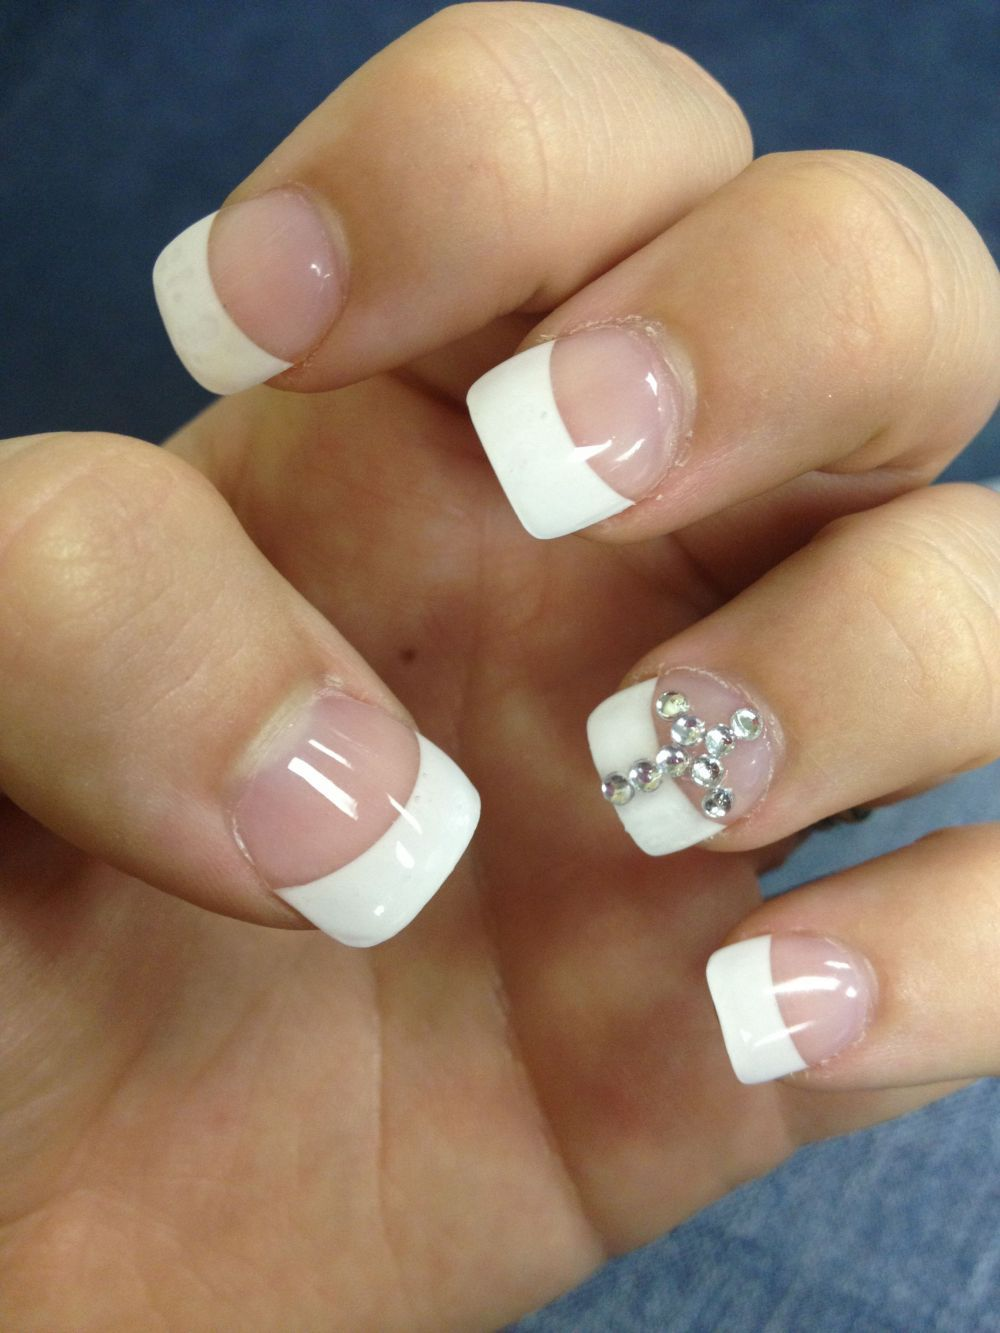 7 Lovely Rhinestone Cross On Nails Fitnailslover - 7 Lovely Rhinestone Cross On Nails Fitnailslover Rhinestone Nails